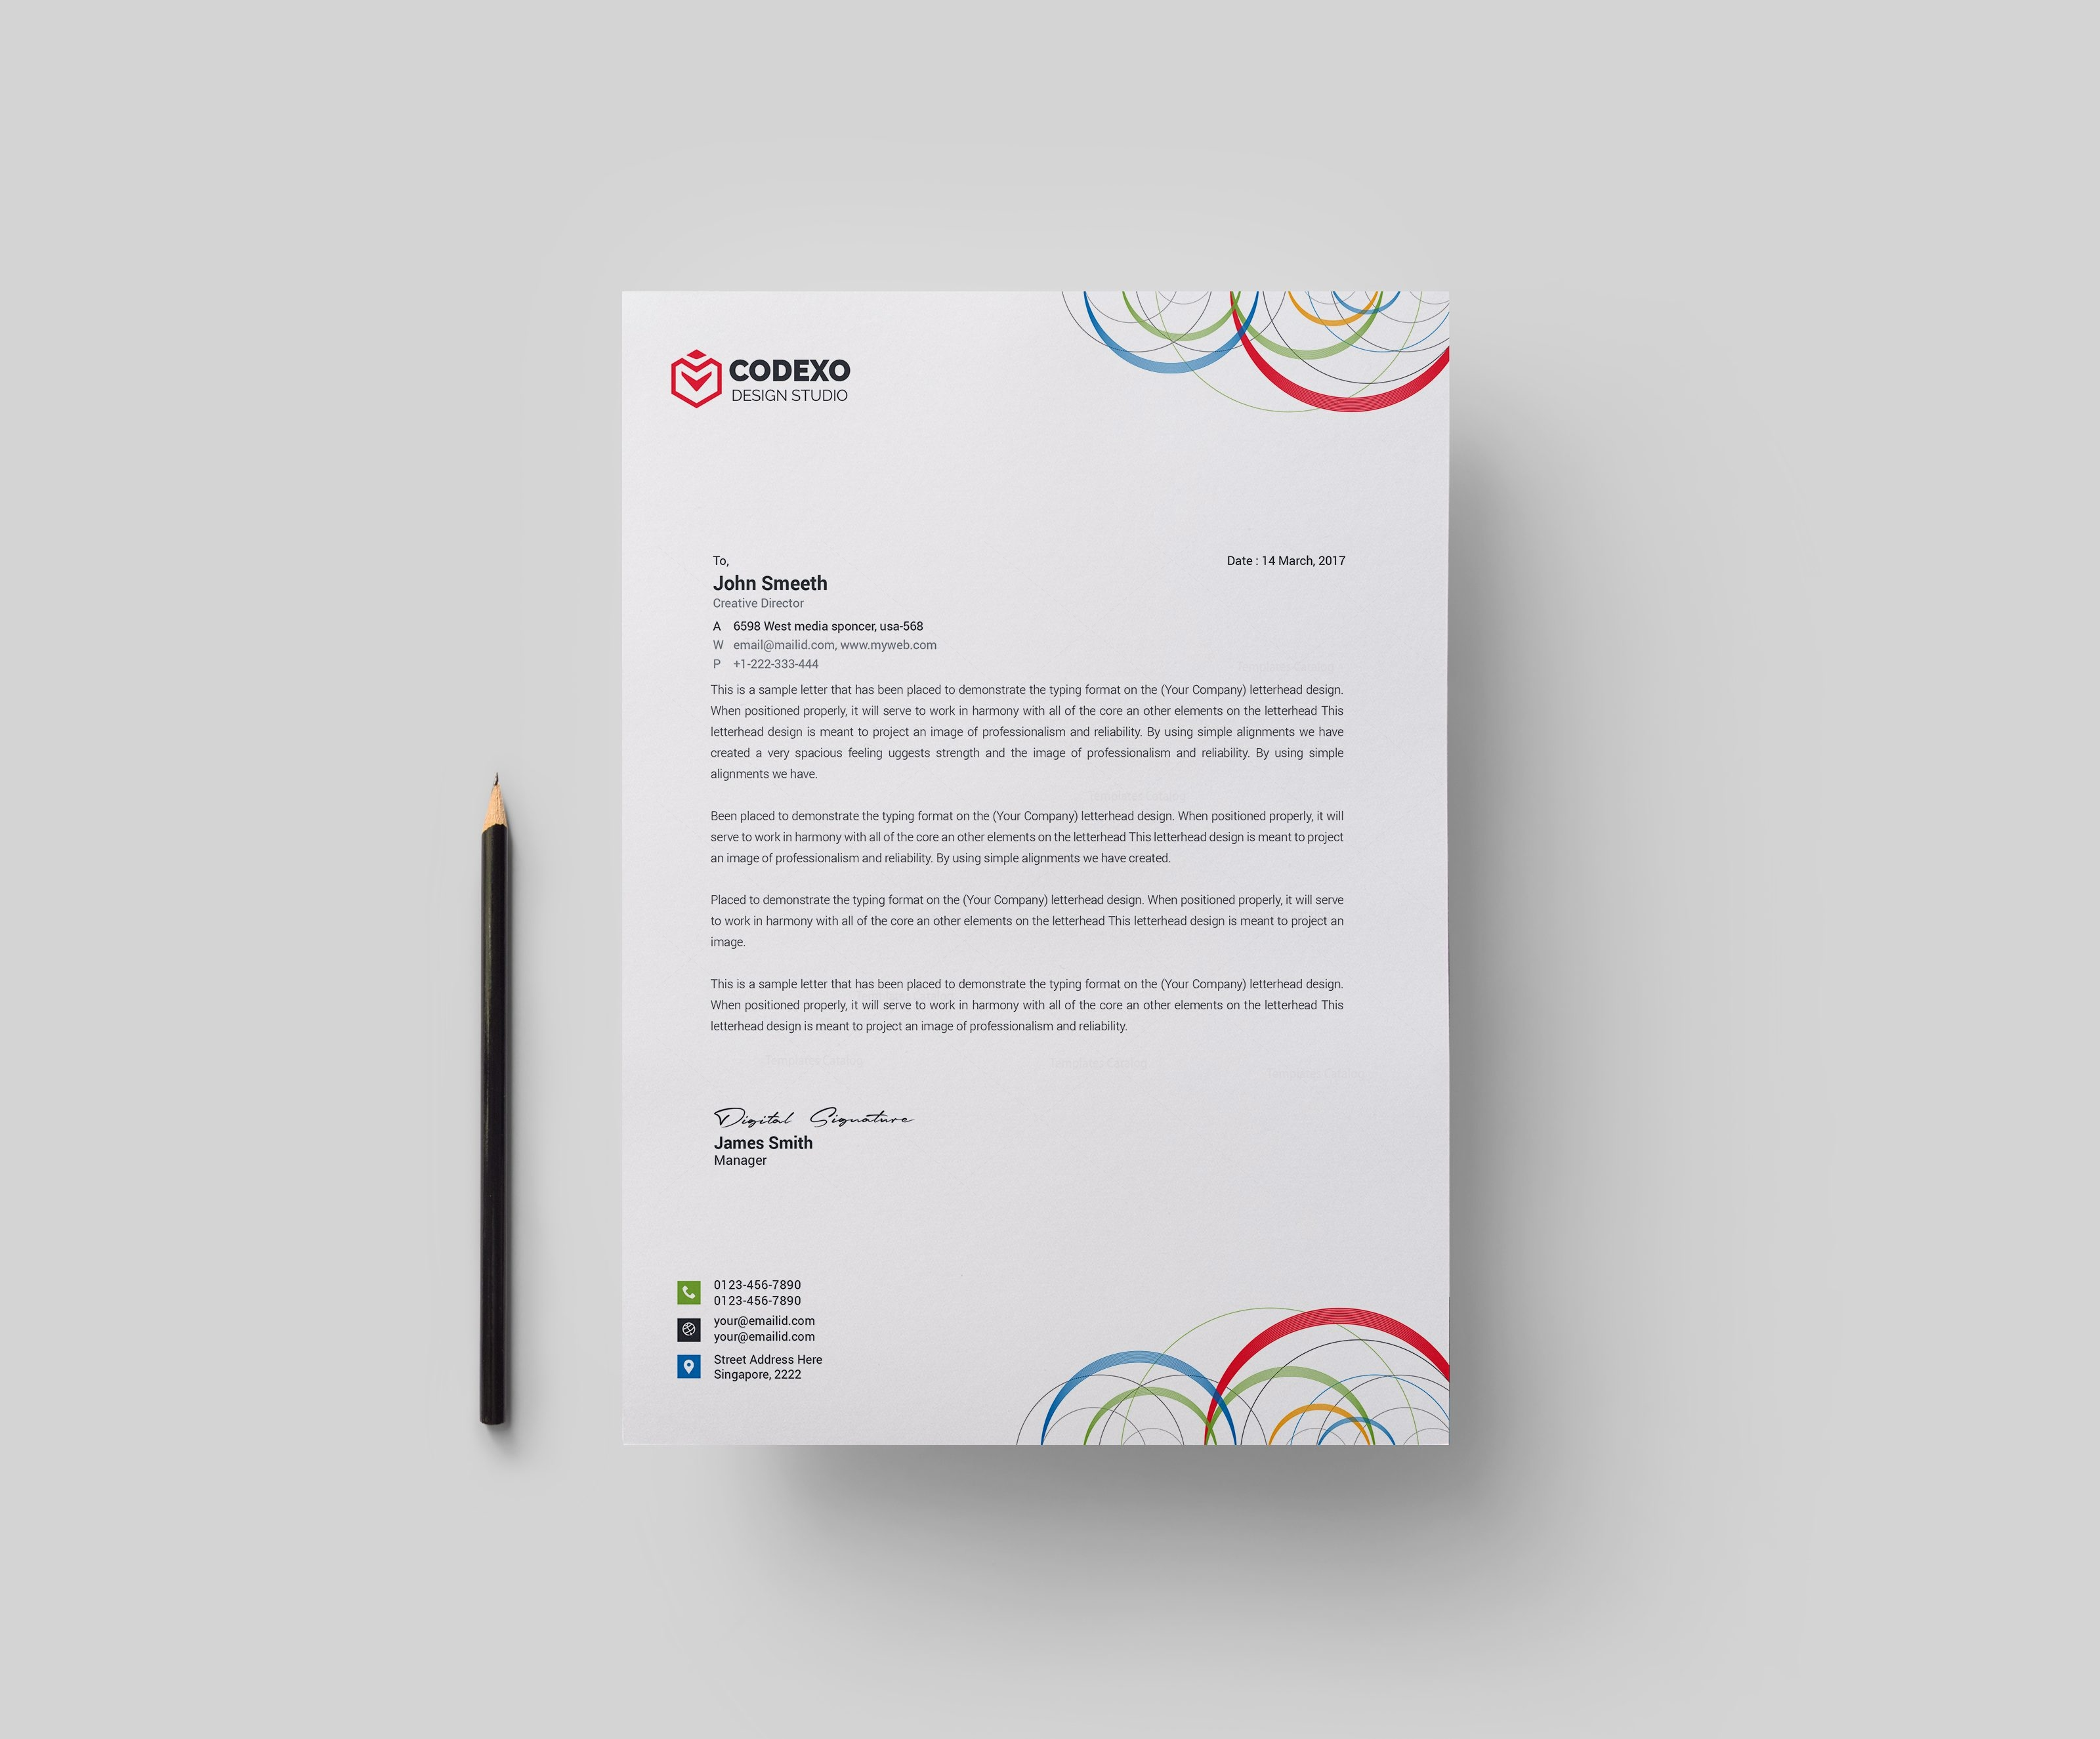 Formal Letter Content Example%0A Business Letterhead Examples Picture Ideas References Poseidon Modern  Corporate Letterhead Template   Business Letterhead Exampleshtml Sample  Letterhead